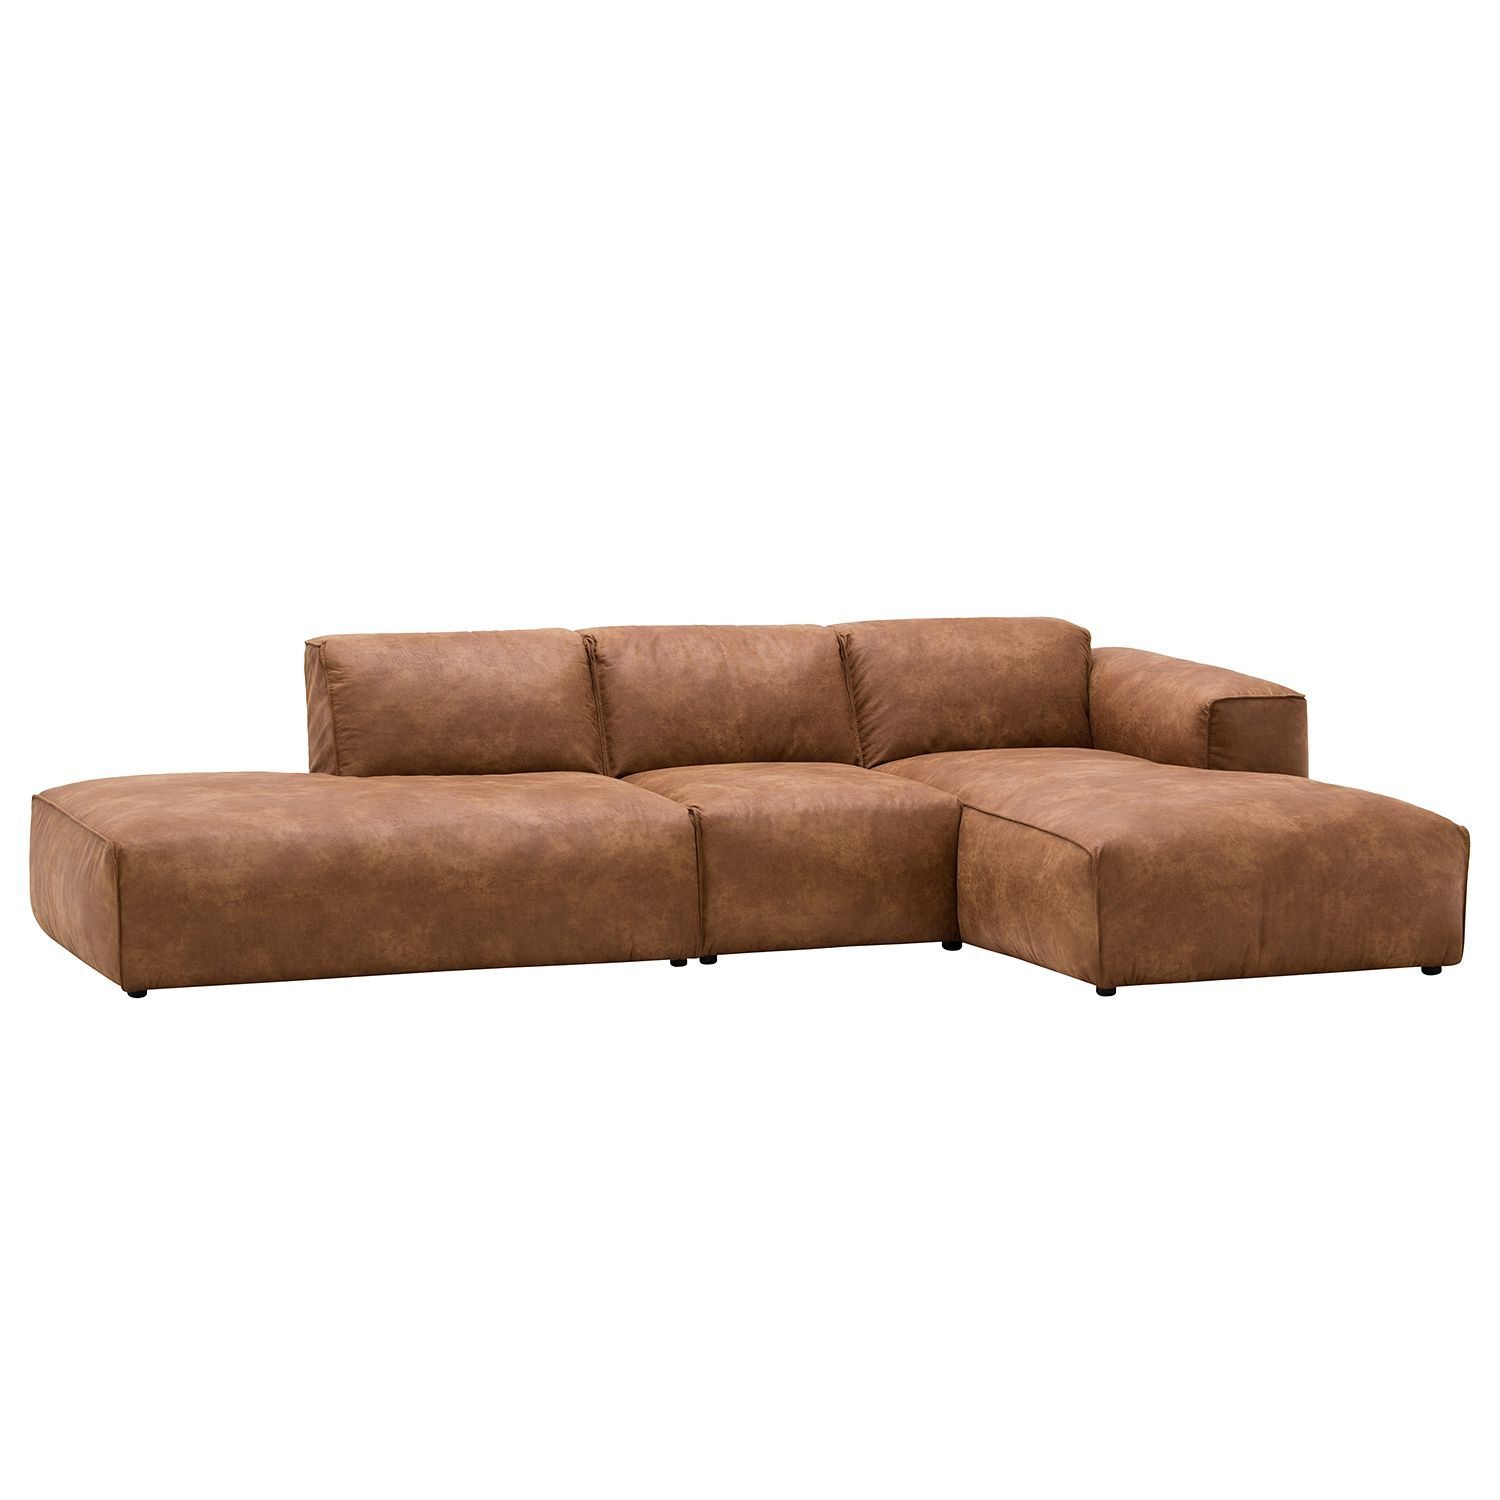 Bigsofa Blair Pin By Ladendirekt On Sofas Couches Sofas Ecksofas Sofa